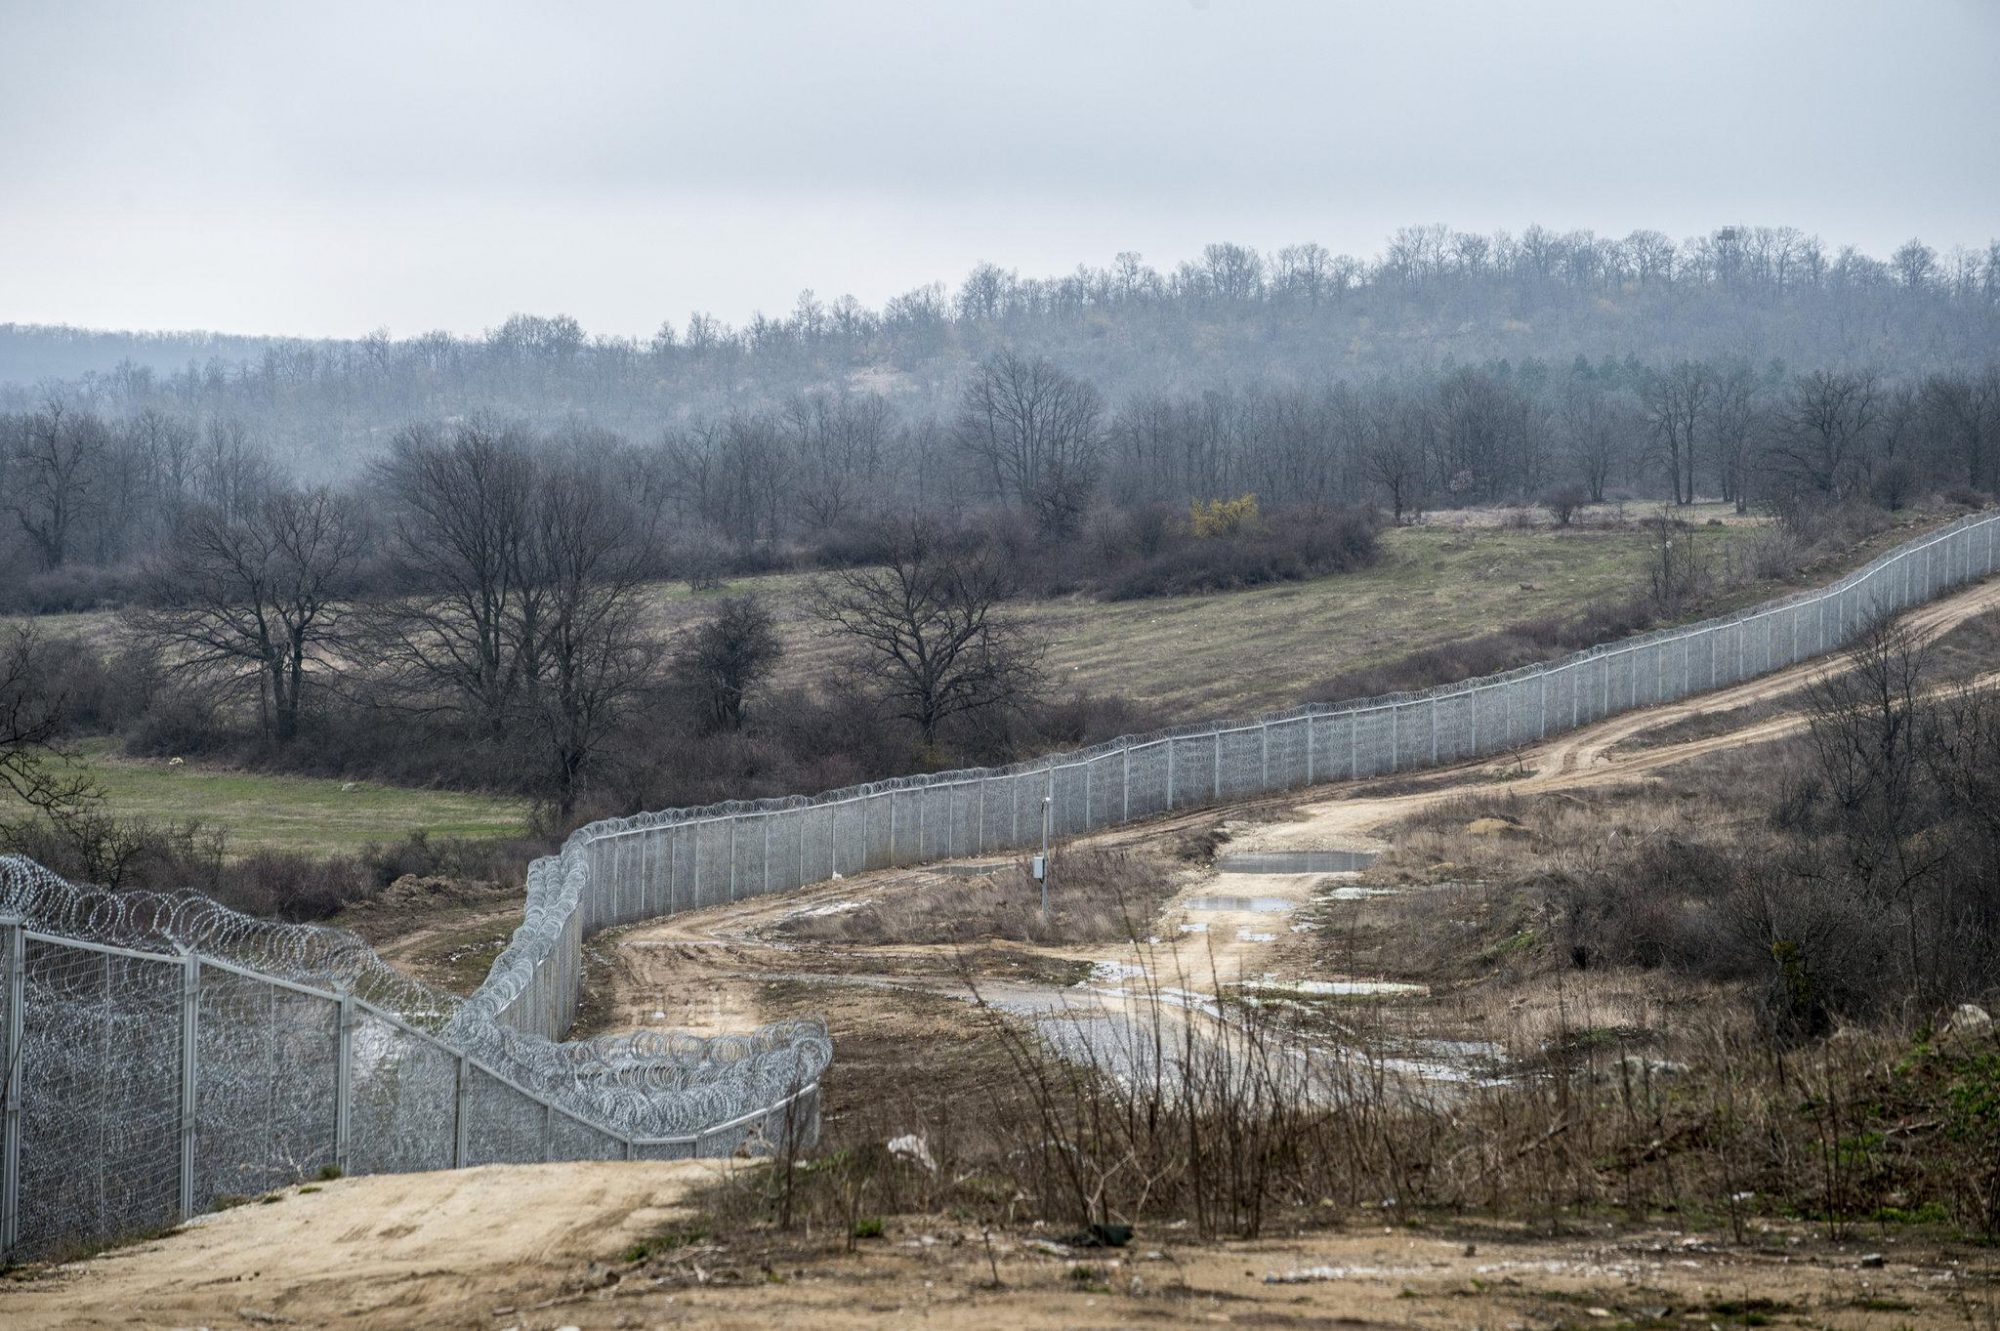 Bulgarian Interior Ministry bans photographing Turkish border fence